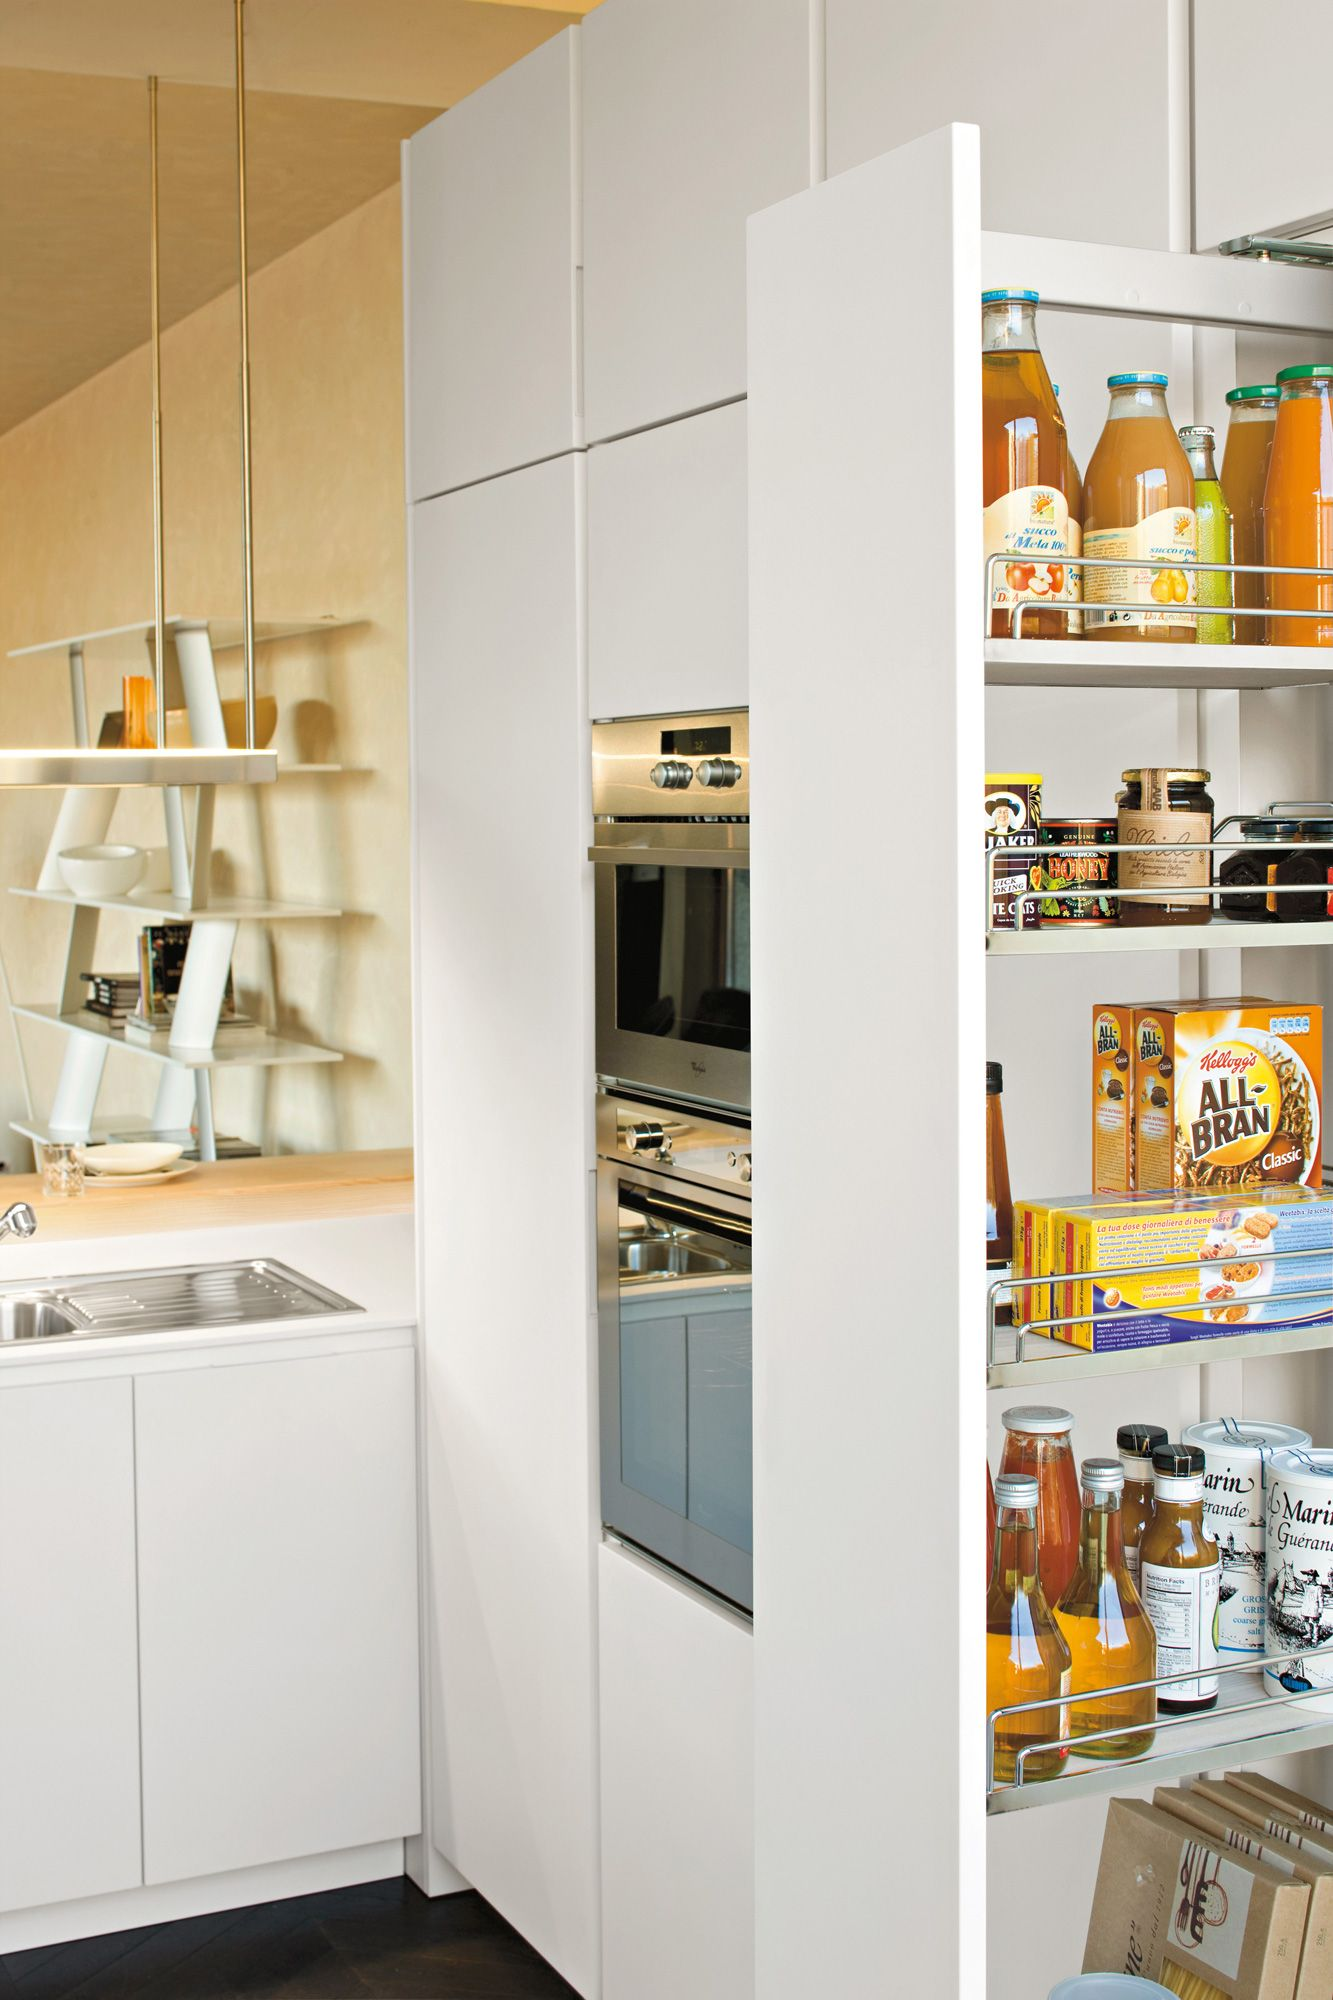 armadio dispensa cucina moderna Orange | arredamento | Pinterest ...